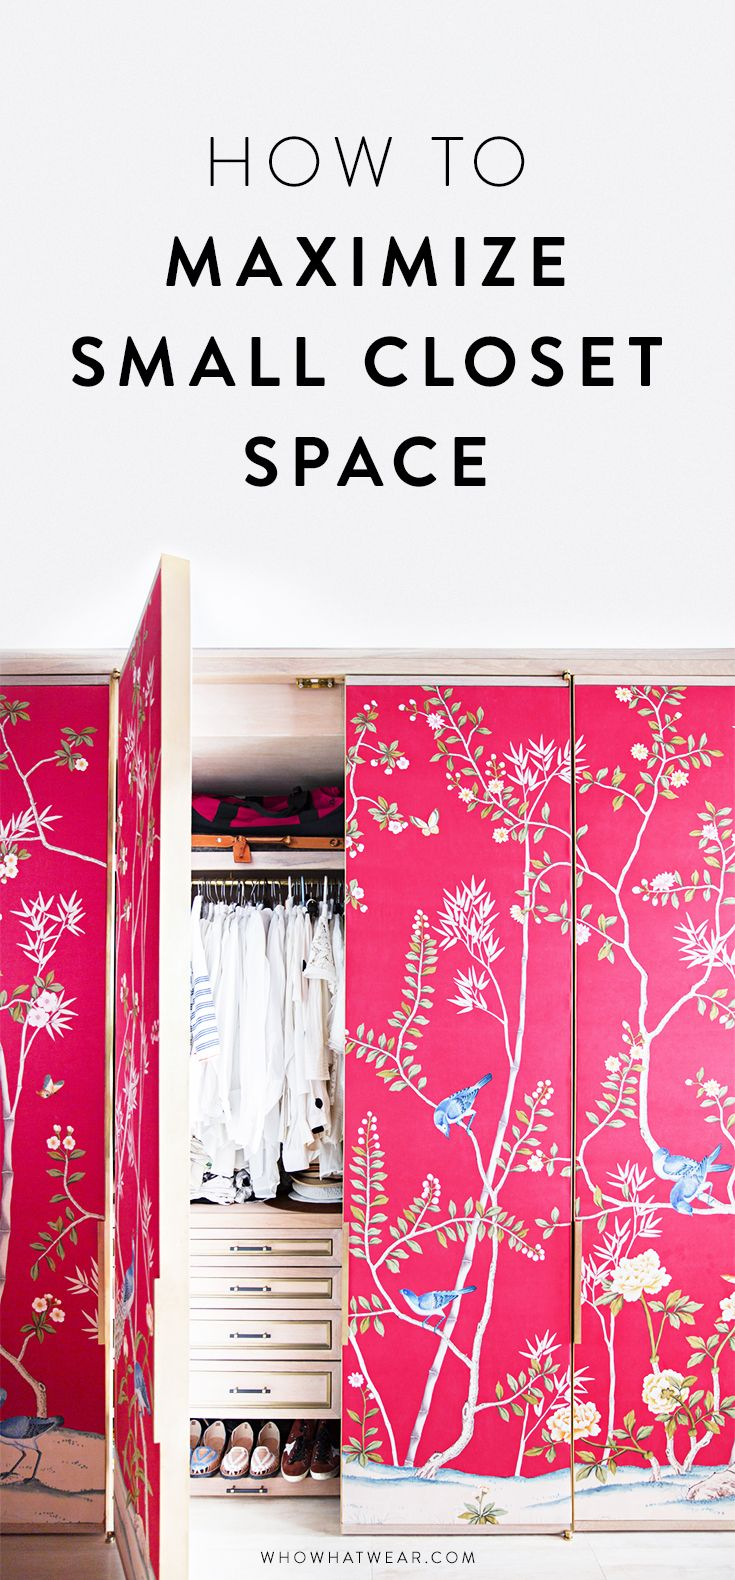 Renting 12 smart ways to maximize your small closet space for How to maximize small spaces